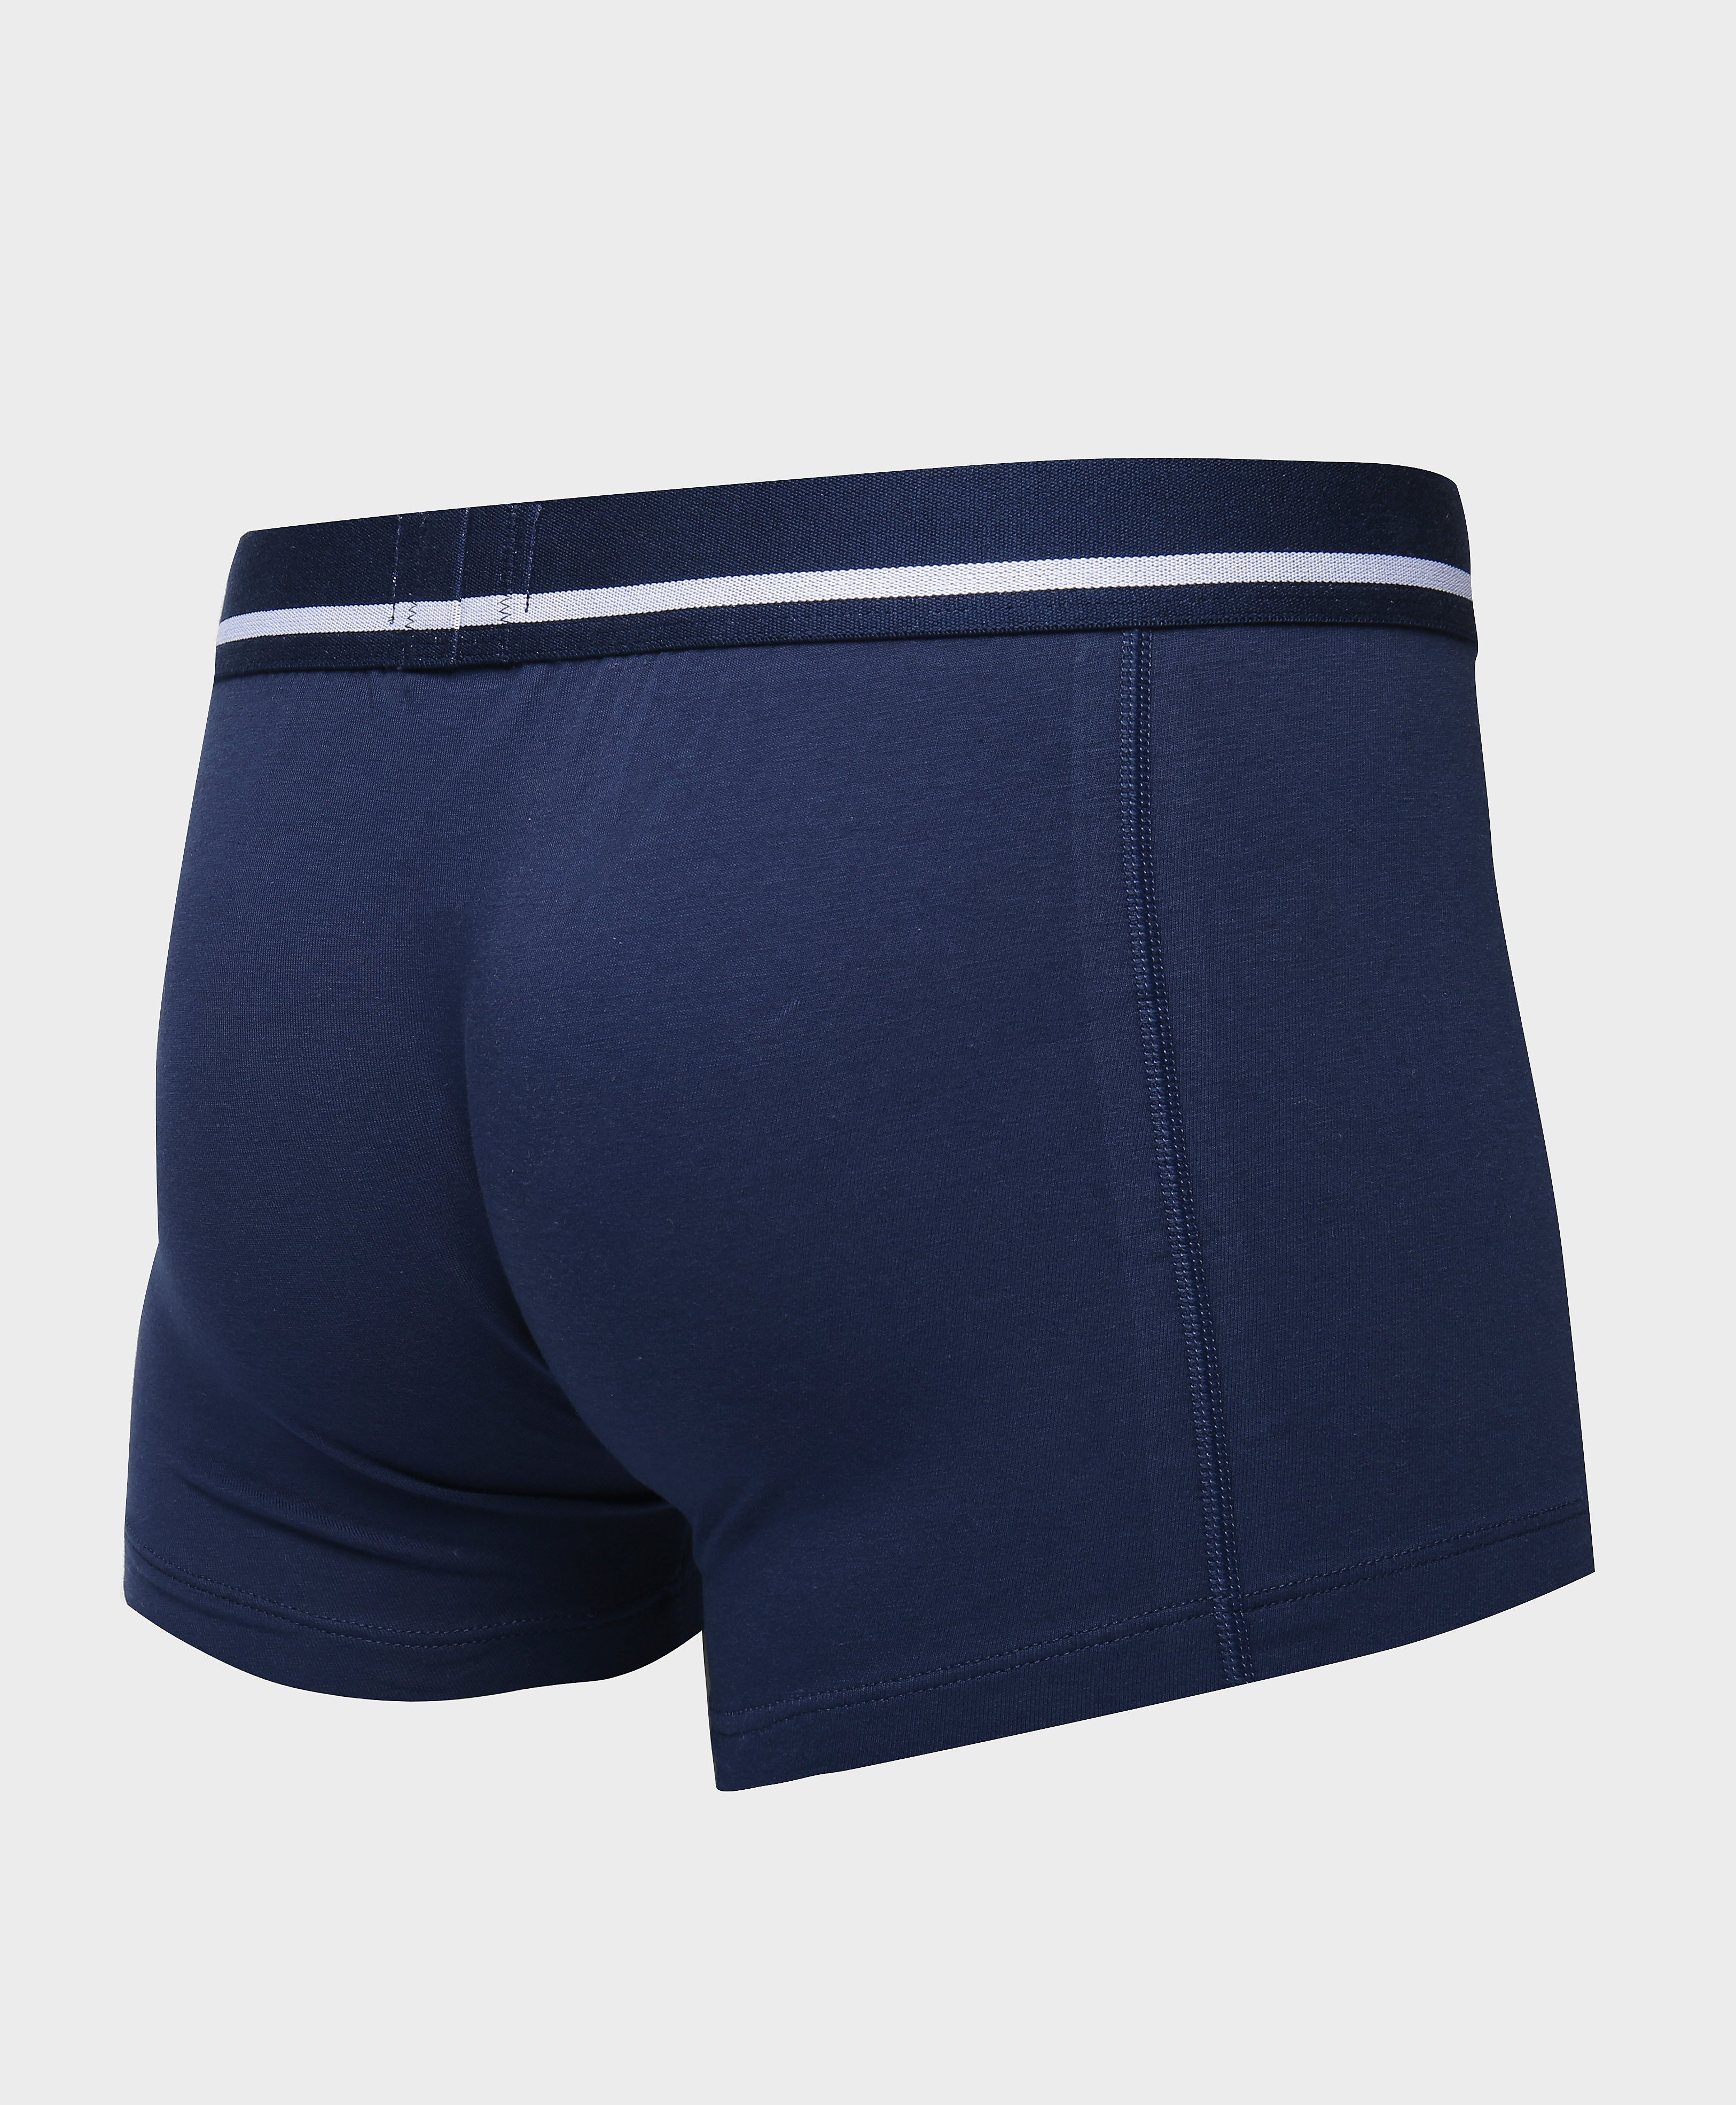 BOSS Boxer Shorts